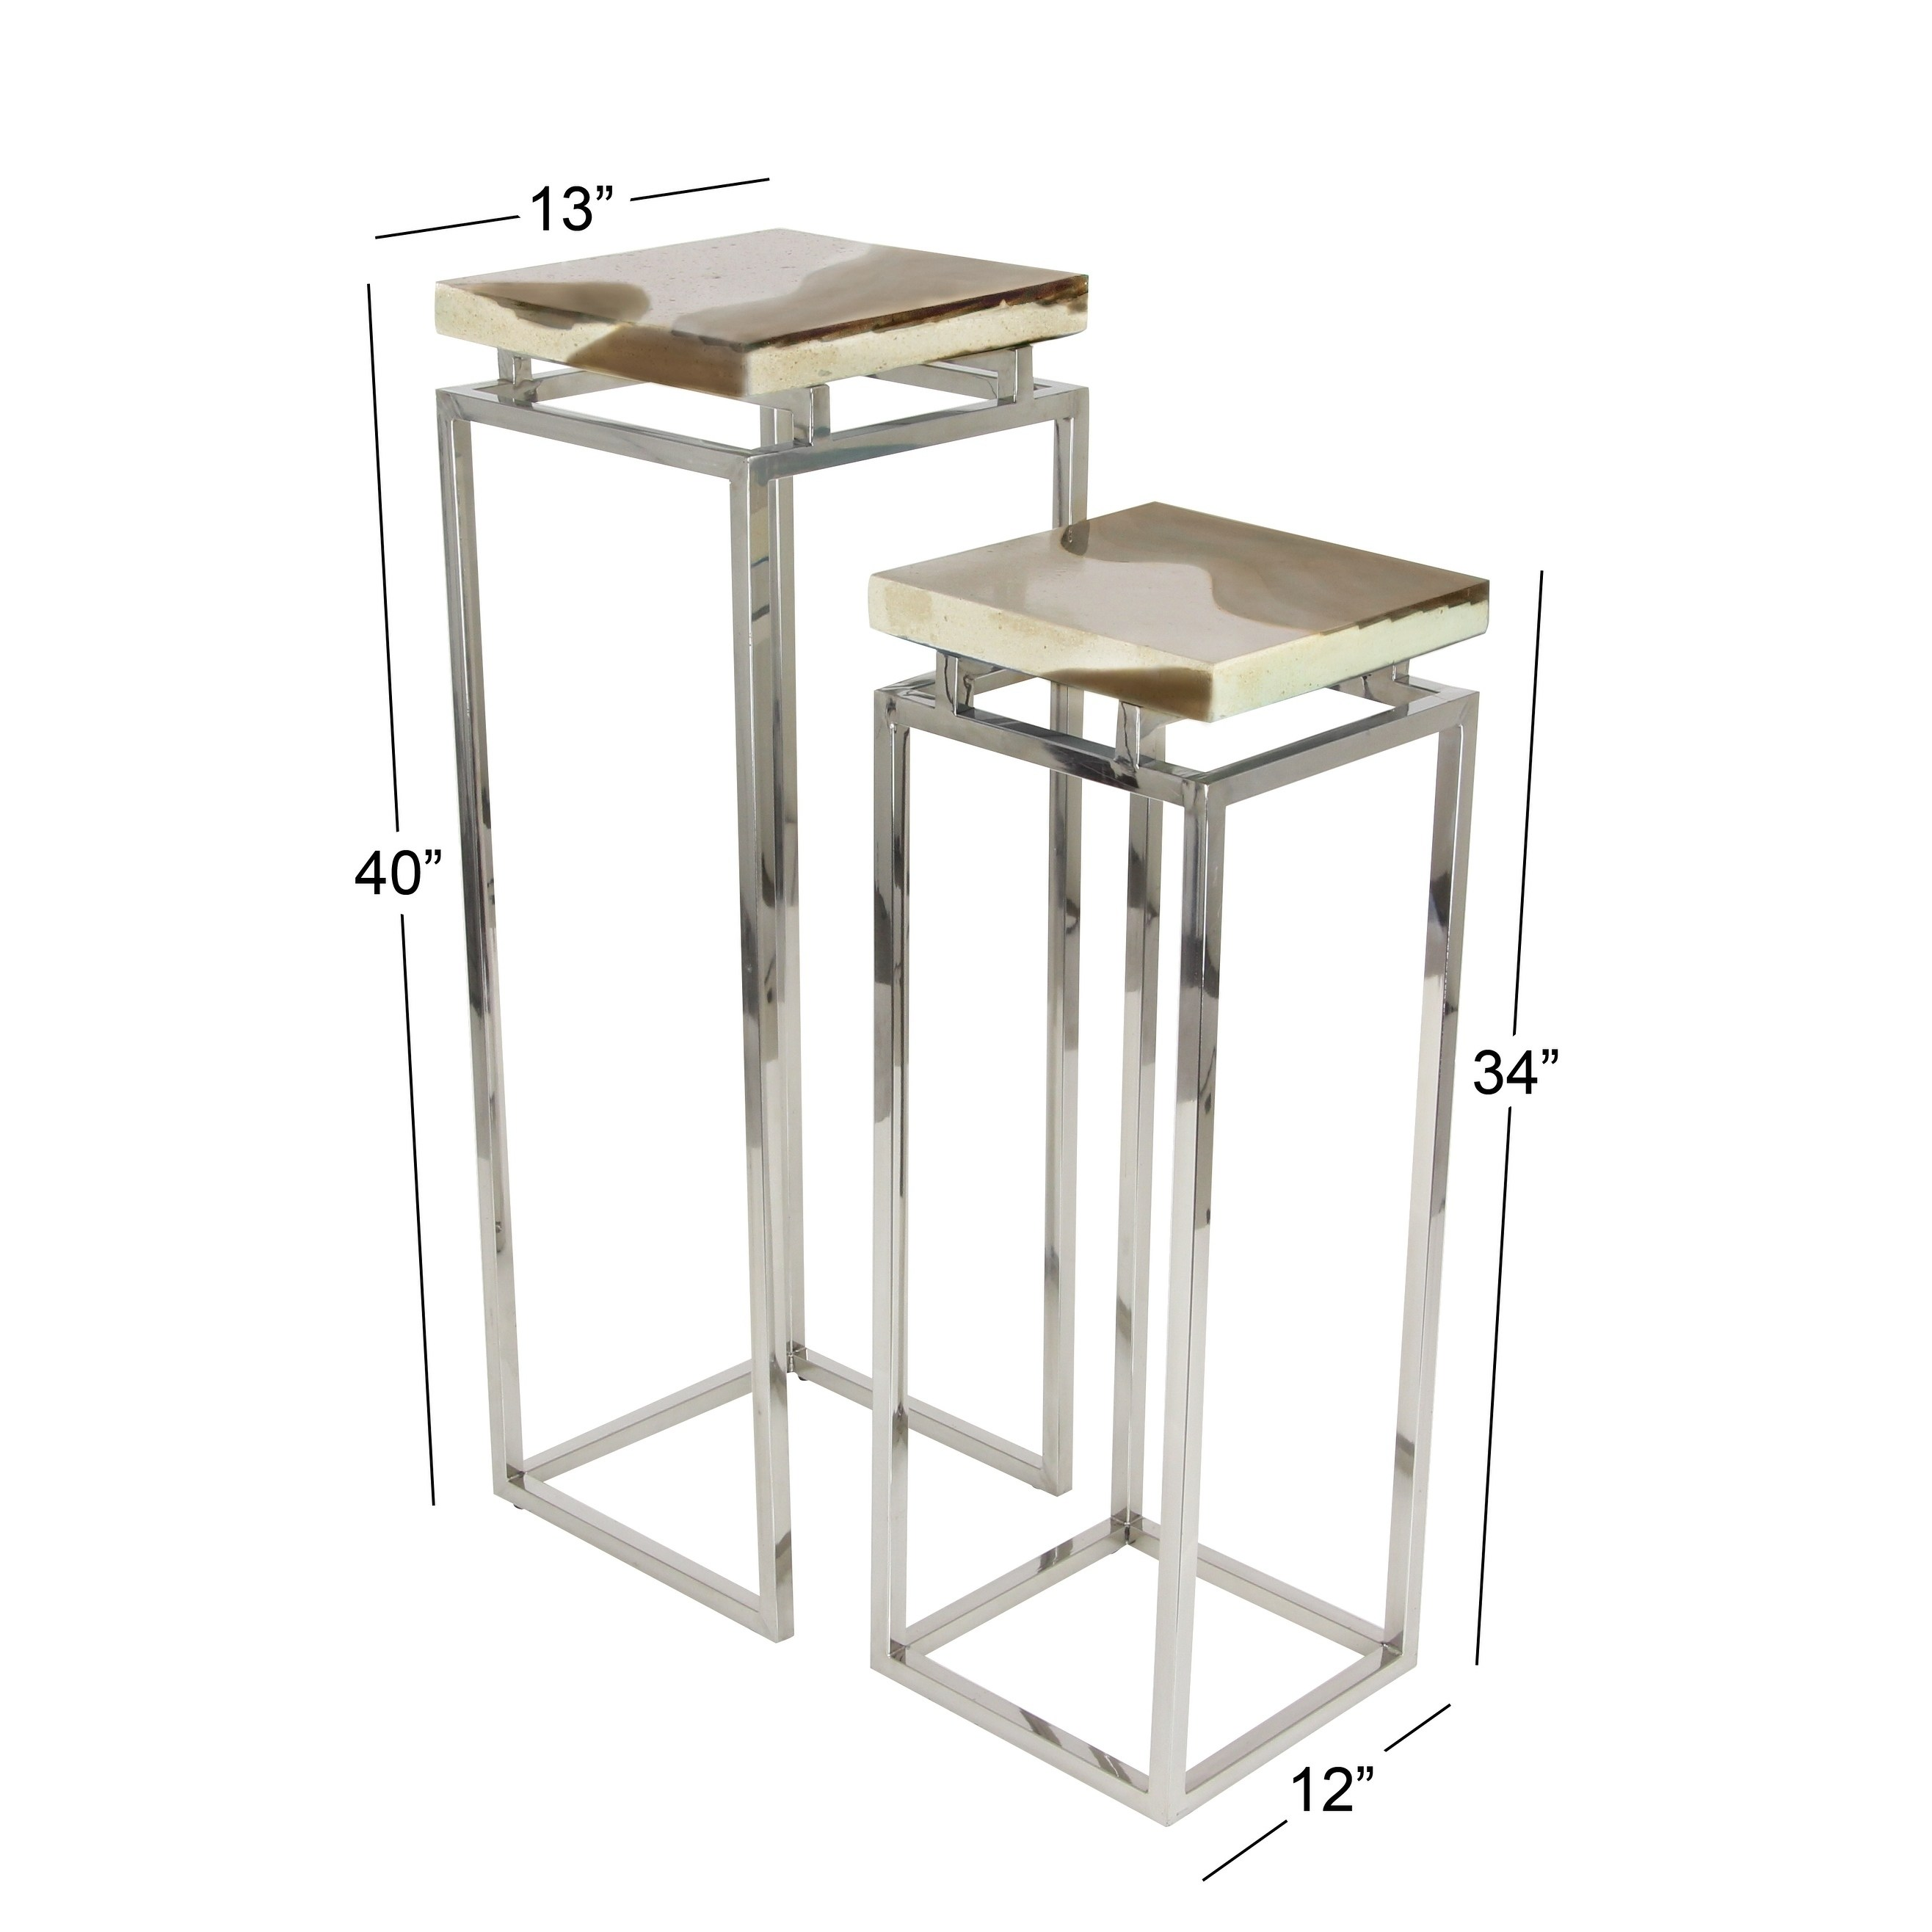 set contemporary and inch white pedestals studio ese accent table free shipping today keter pacific cool bar light wood nest tables garden parasol base antique reclaimed corner